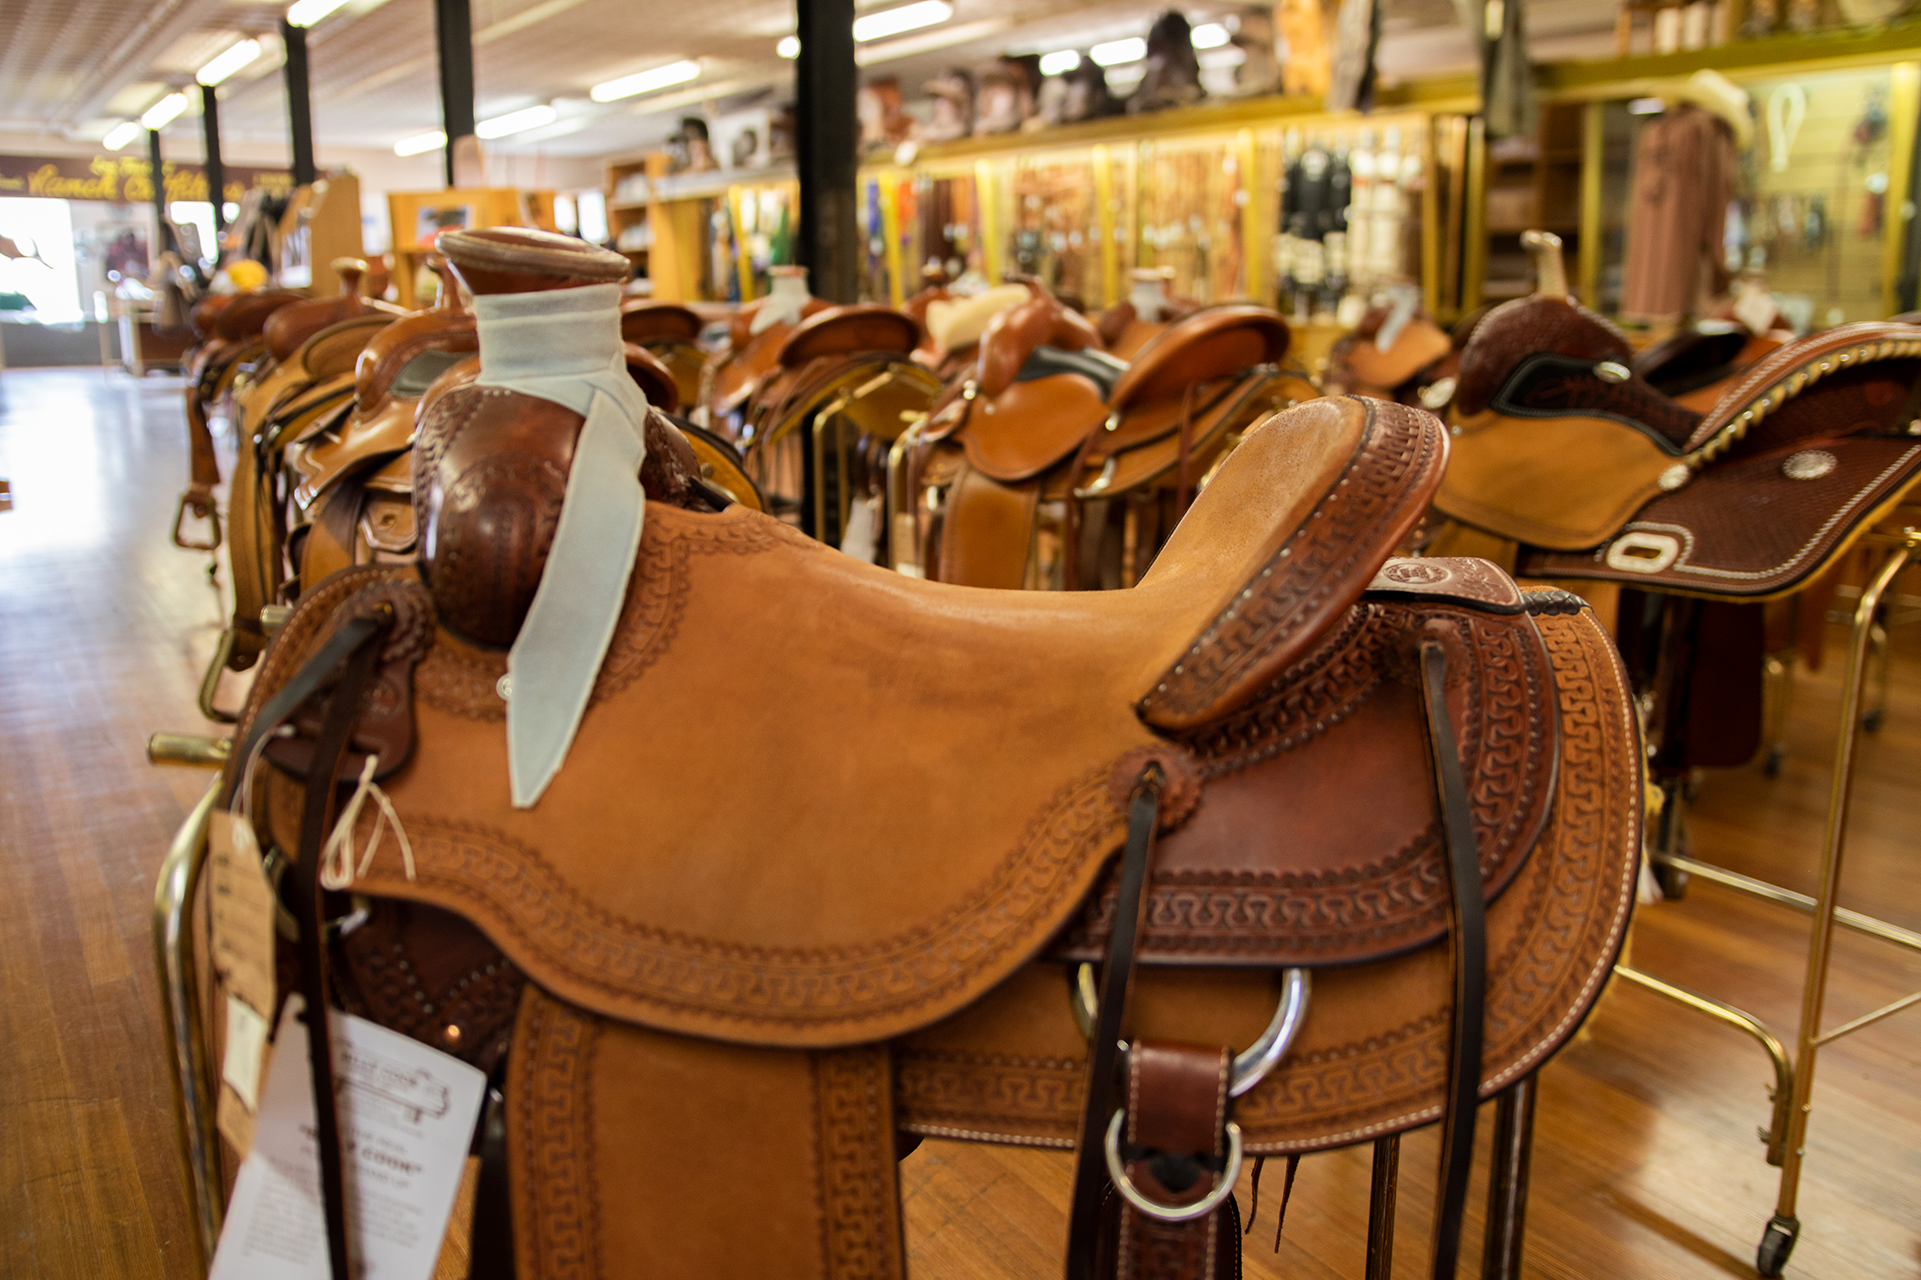 """Saddle & Tack"" - Come browse our fine selection of Billy Cook saddles, along with other supplies like ropes, chaps, bridles, and bronc riding gear."